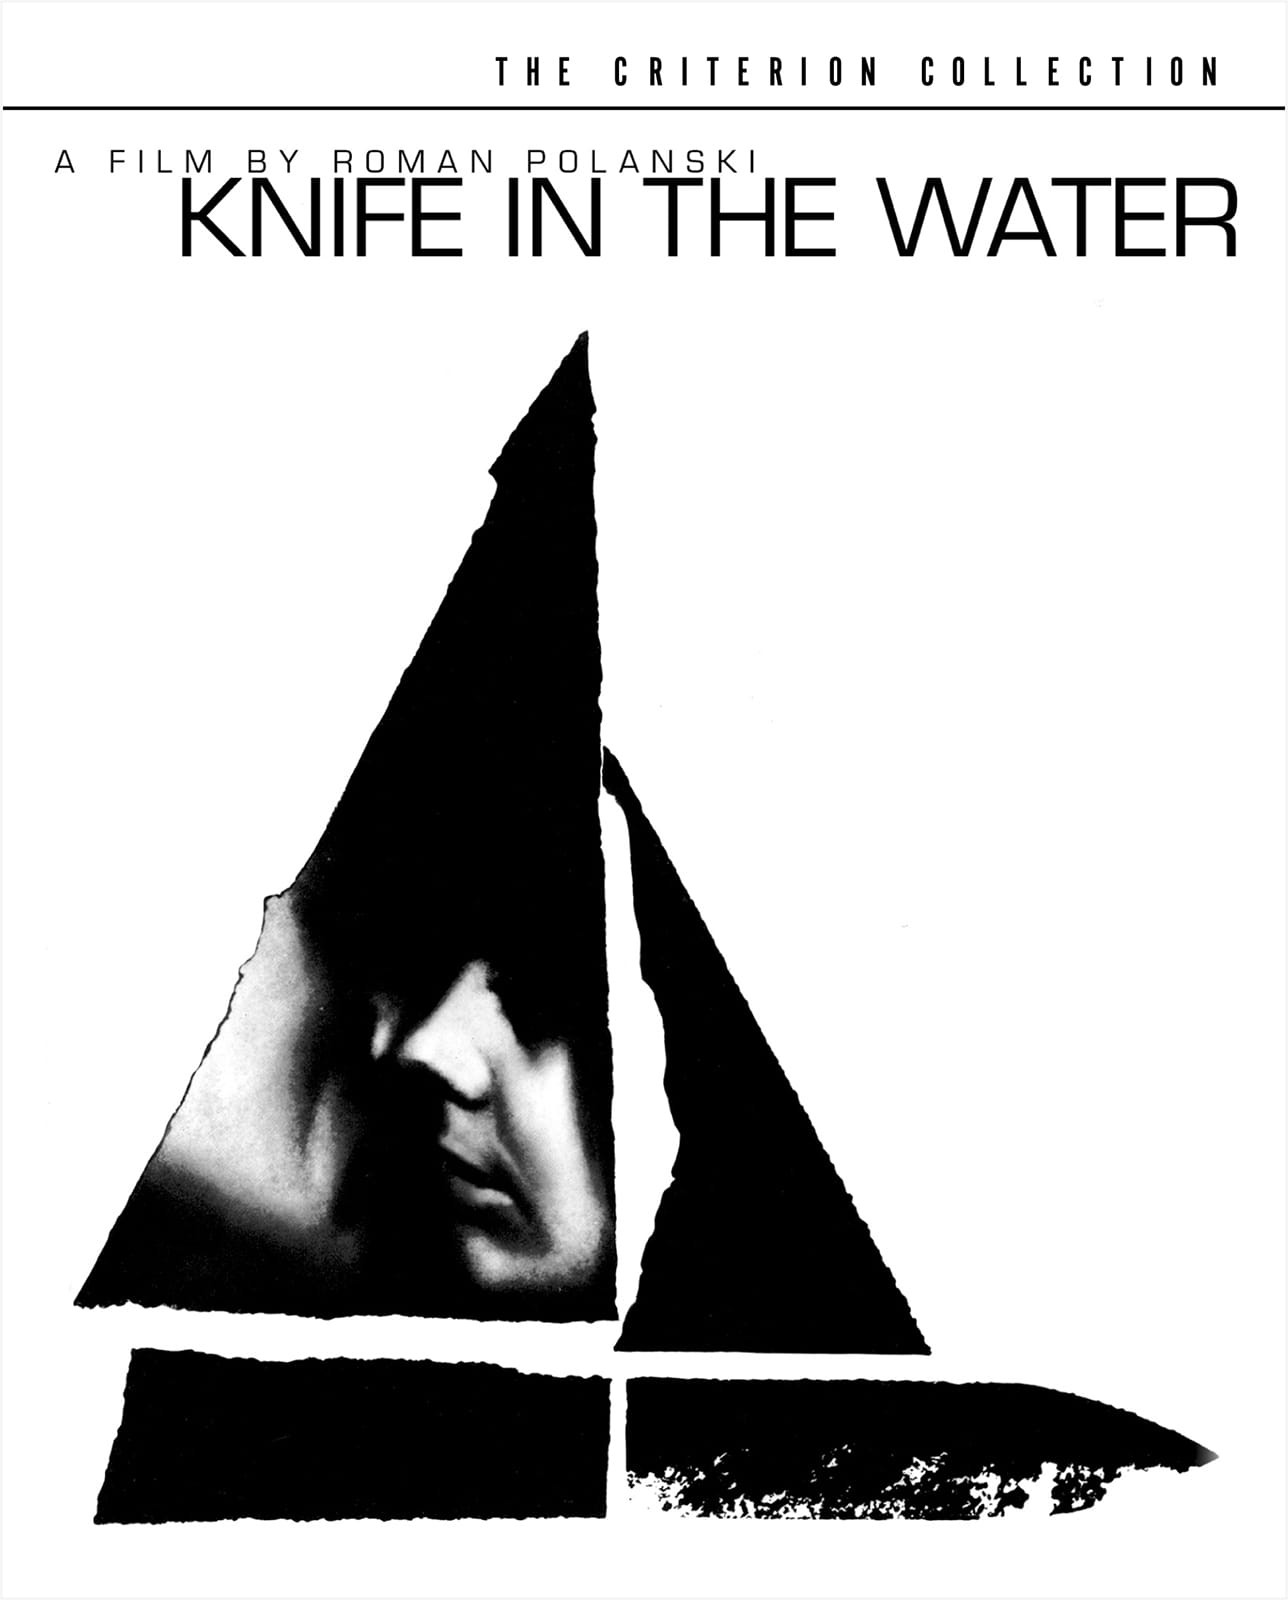 Knife in the Water (1962) - Directed by: Roman PolanskiStarring: Leon Niemczyk, Jolanta Umecka, Zygmunt MalanowiczRated: NR (Suggested PG-13 for Some Thematic Material)Running Time: 1 h 34 mTMM Score: 4.5 stars out of 5STRENGTHS: Writing, Directing, ThemesWEAKNESSES: Pacing